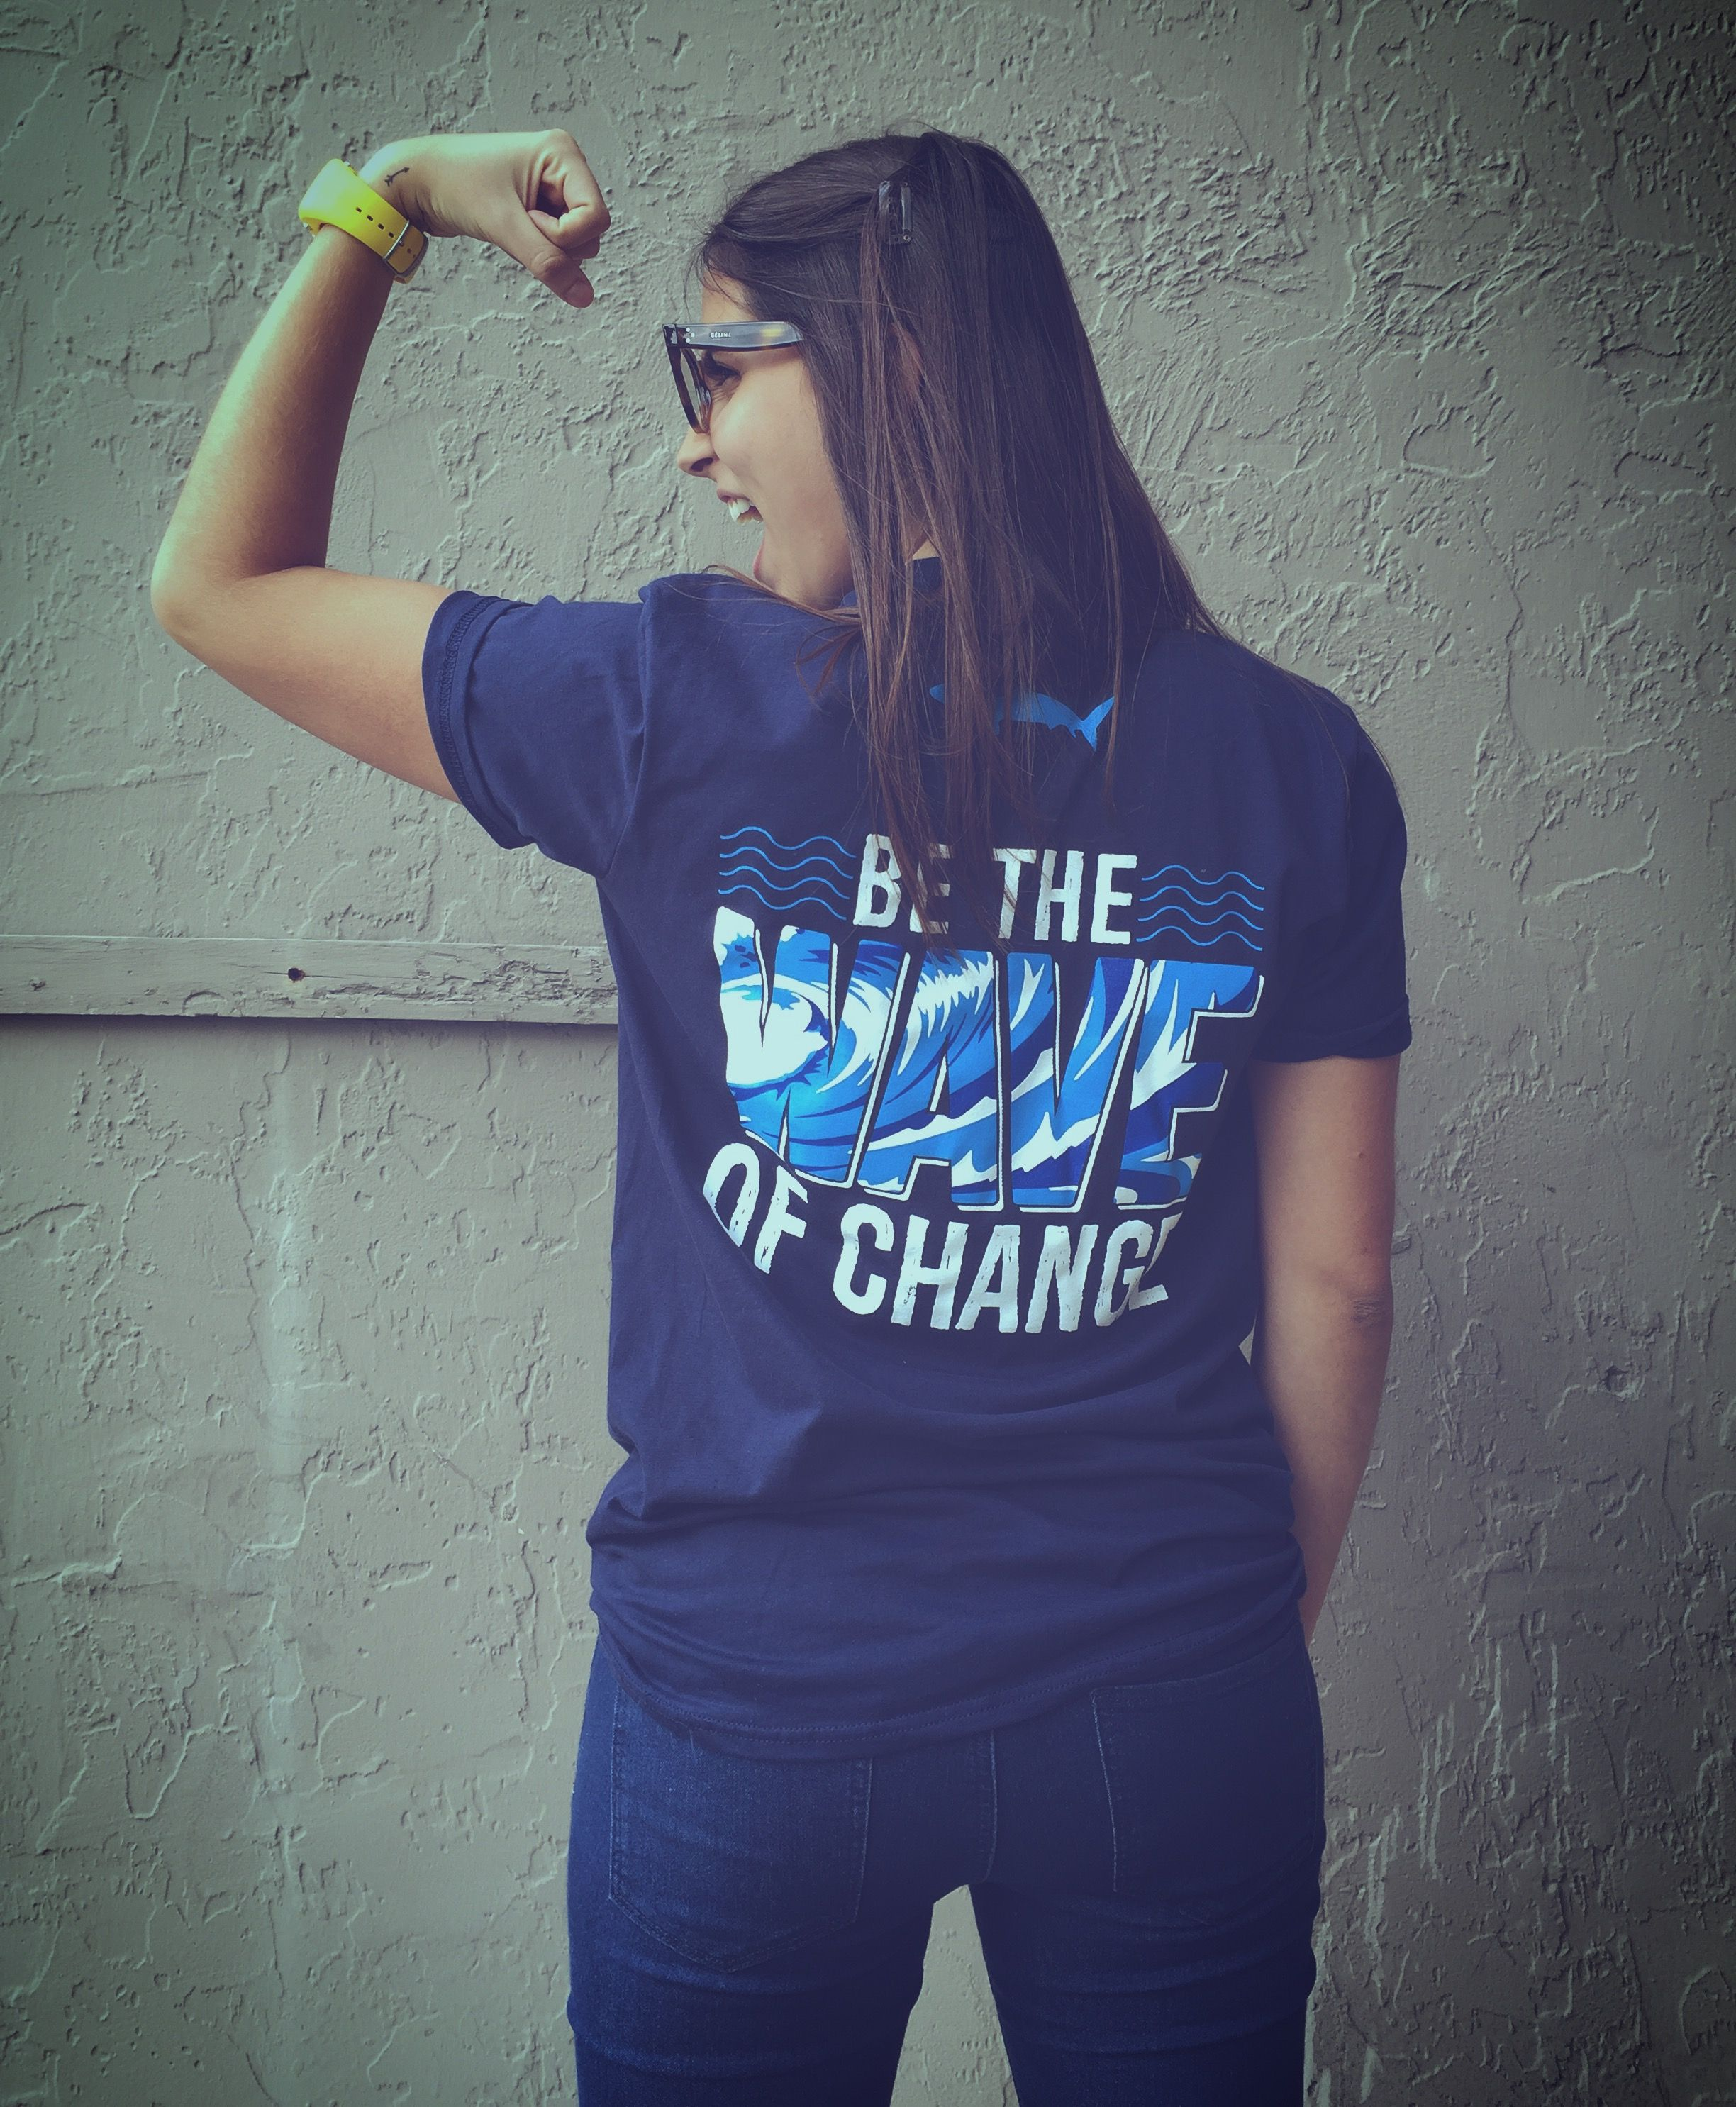 T-shirt design questionnaire - Be The Wave Of Change Custom T Shirt Design Ideas For College Students Campus